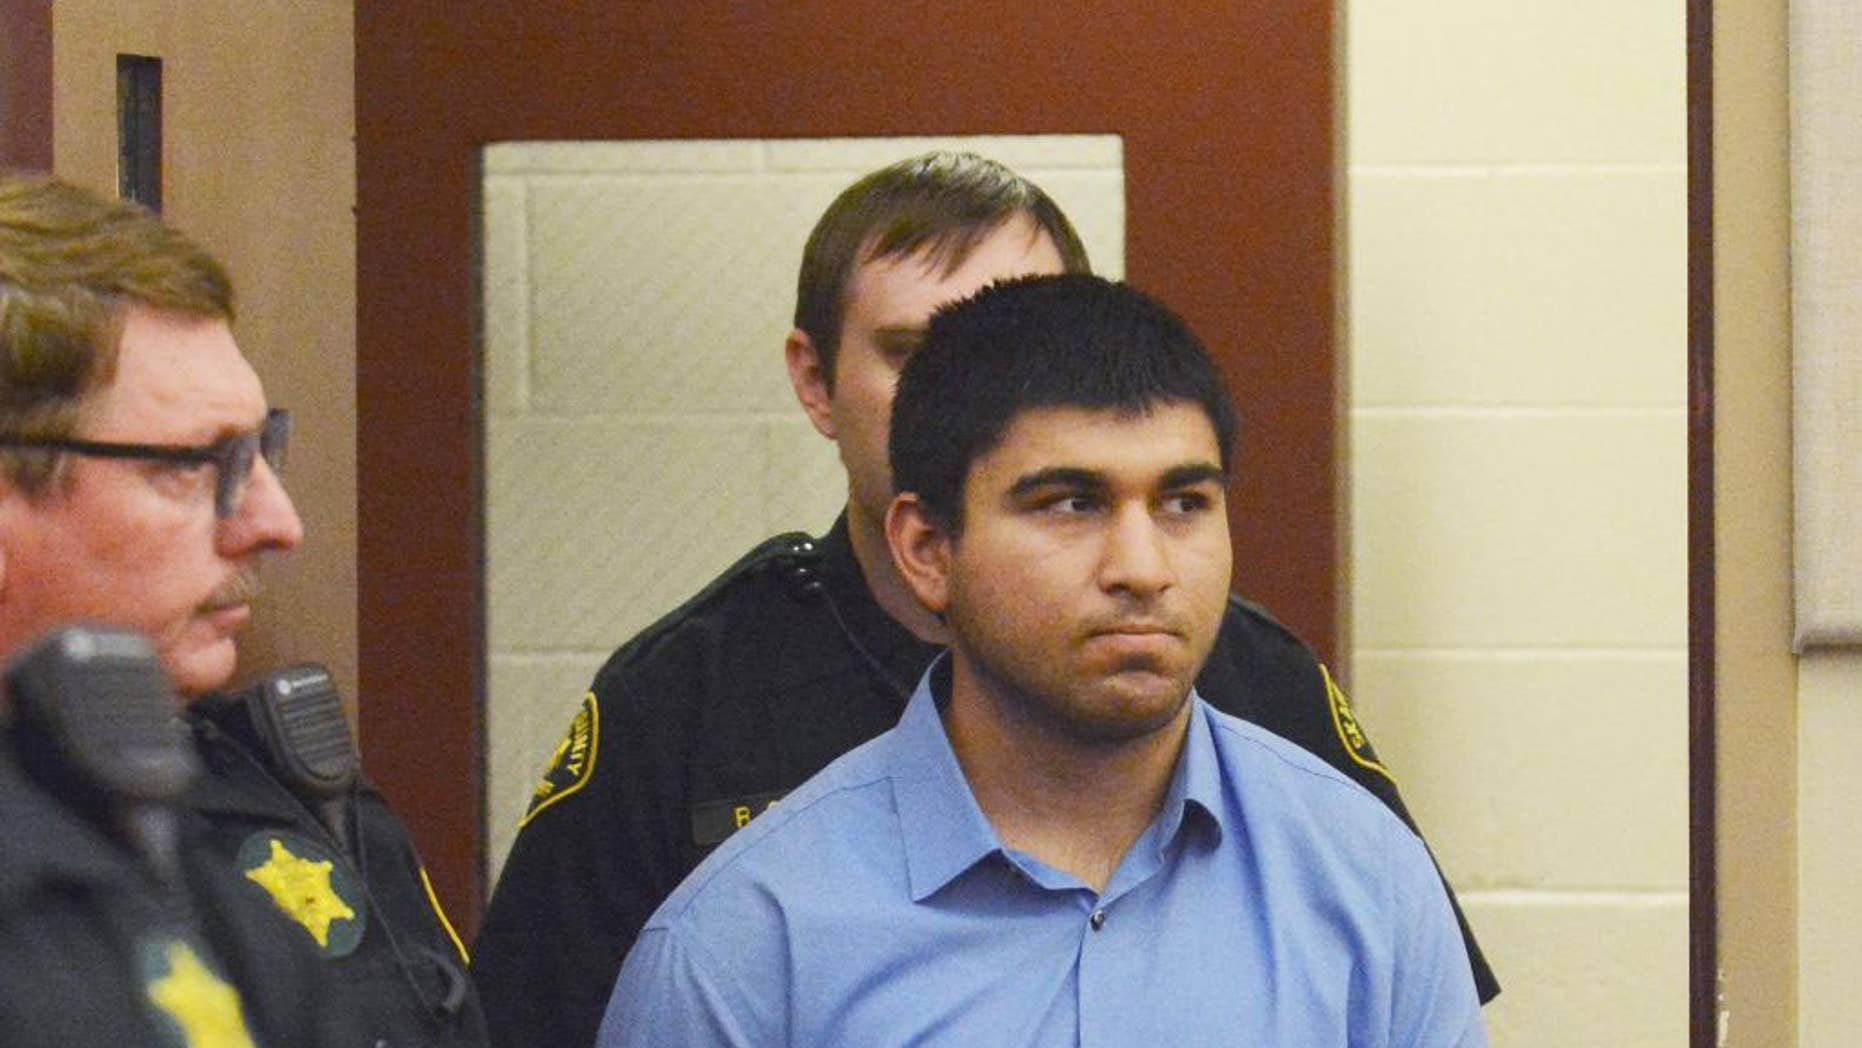 FILE - In this Sept. 26, 2016, file photo, Arcan Cetin is escorted into Skagit County District Court by Skagit County's Sheriff's Deputies, in Mount Vernon, Wash.